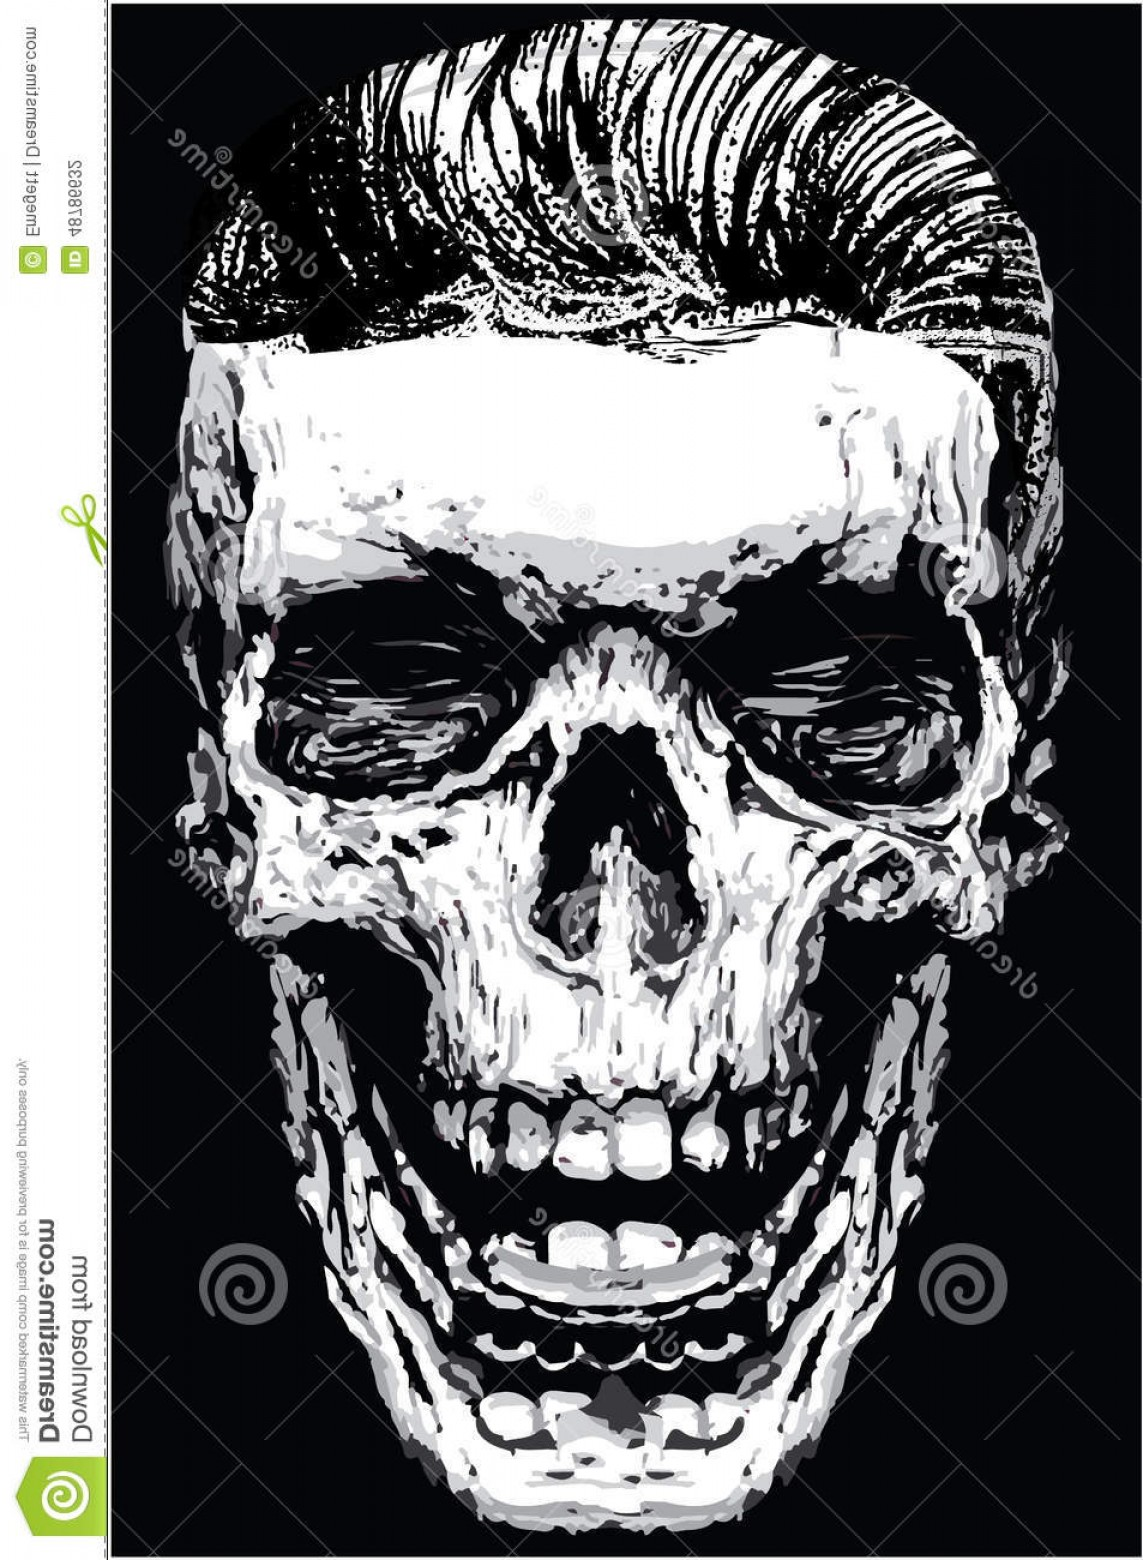 Skull Vector T-shirt Illustration: Stock Illustration Skull Death Print Man T Shirt Graphic Vector Design Printing Art Illustration Image